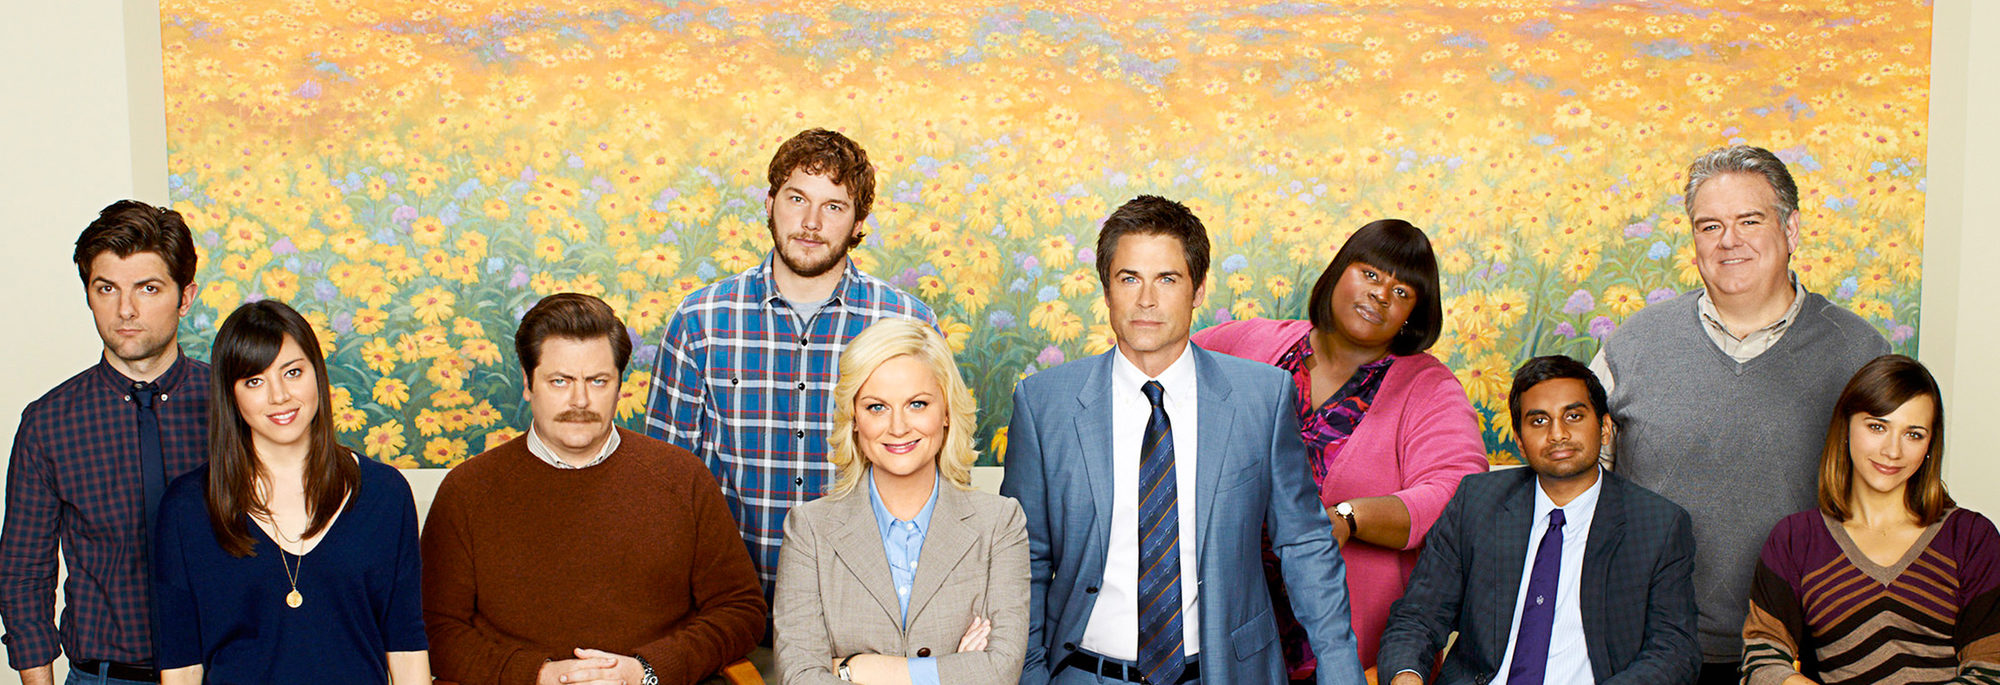 'Parks and Recreation' and the Power of Knope